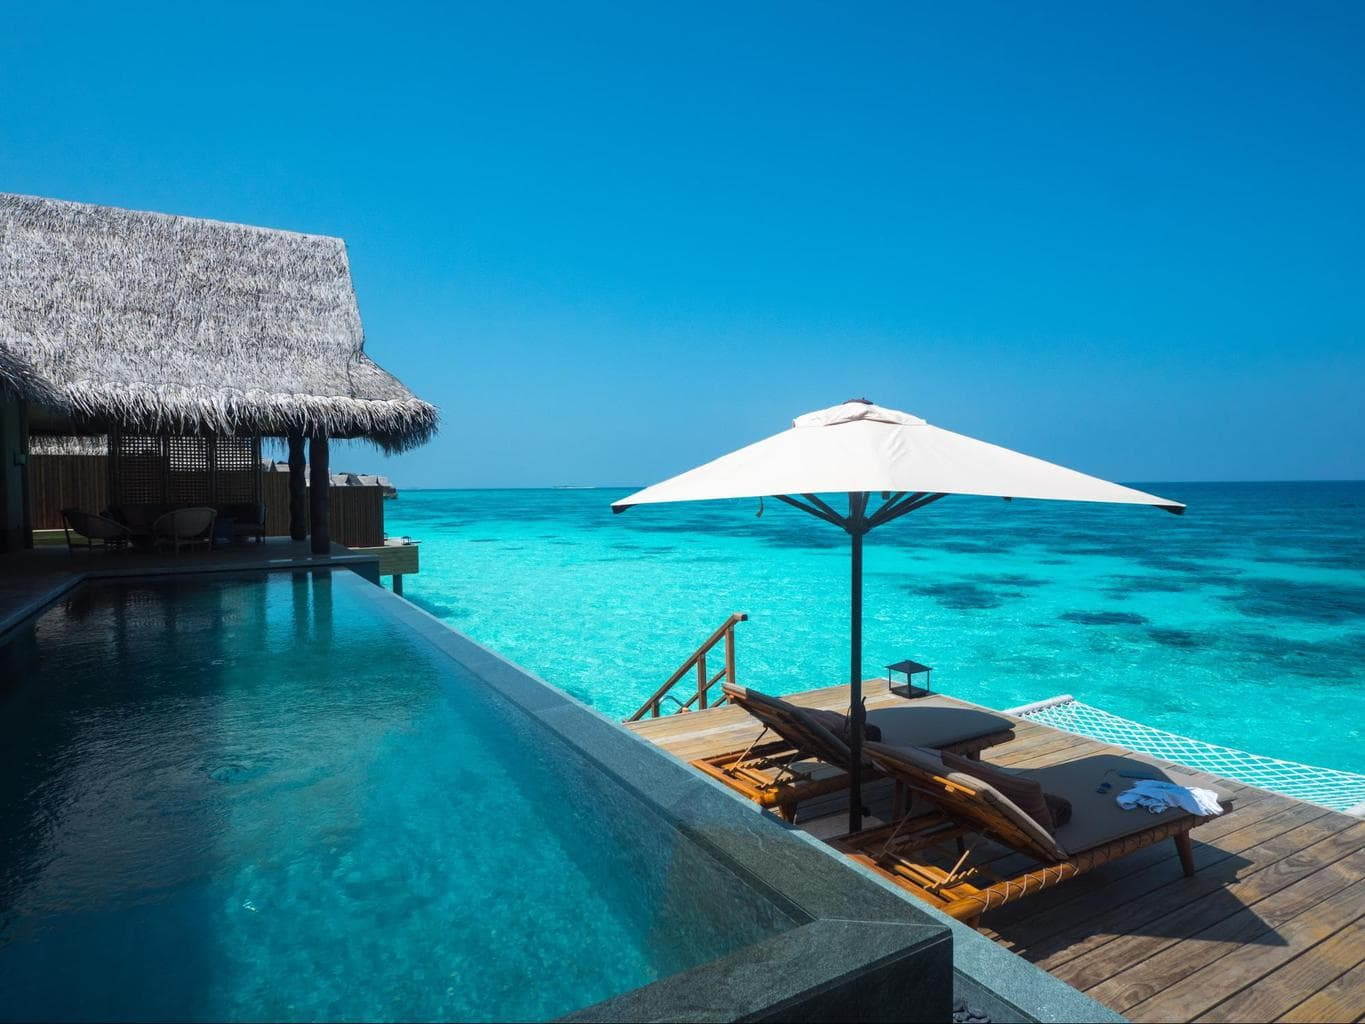 The pool and sun loungers at Joali's Luxury Water Villa